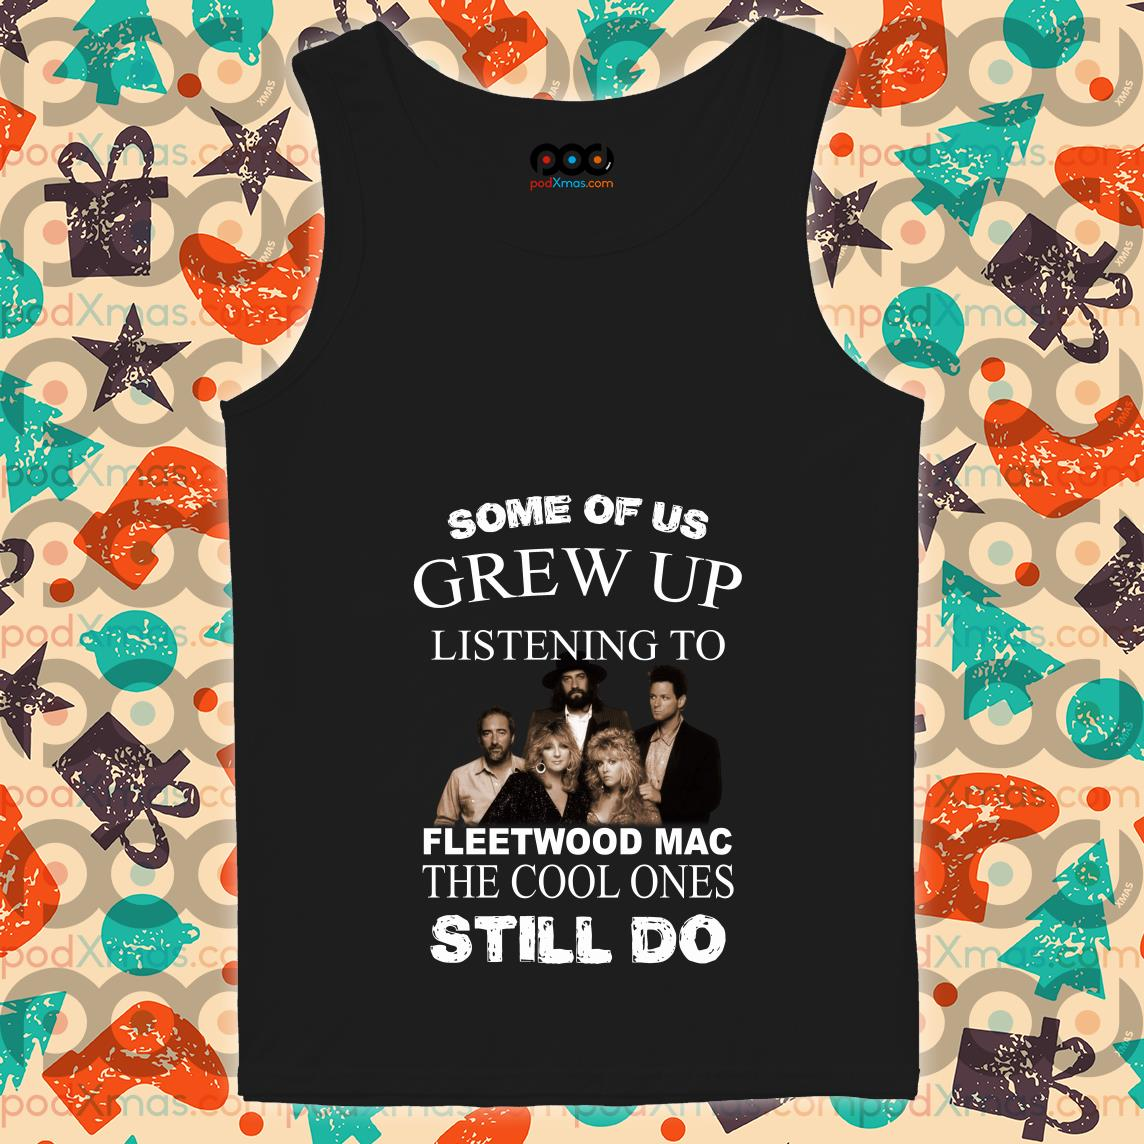 Some of us grew up listening to Fleetwood Mac the cool ones still does tank top